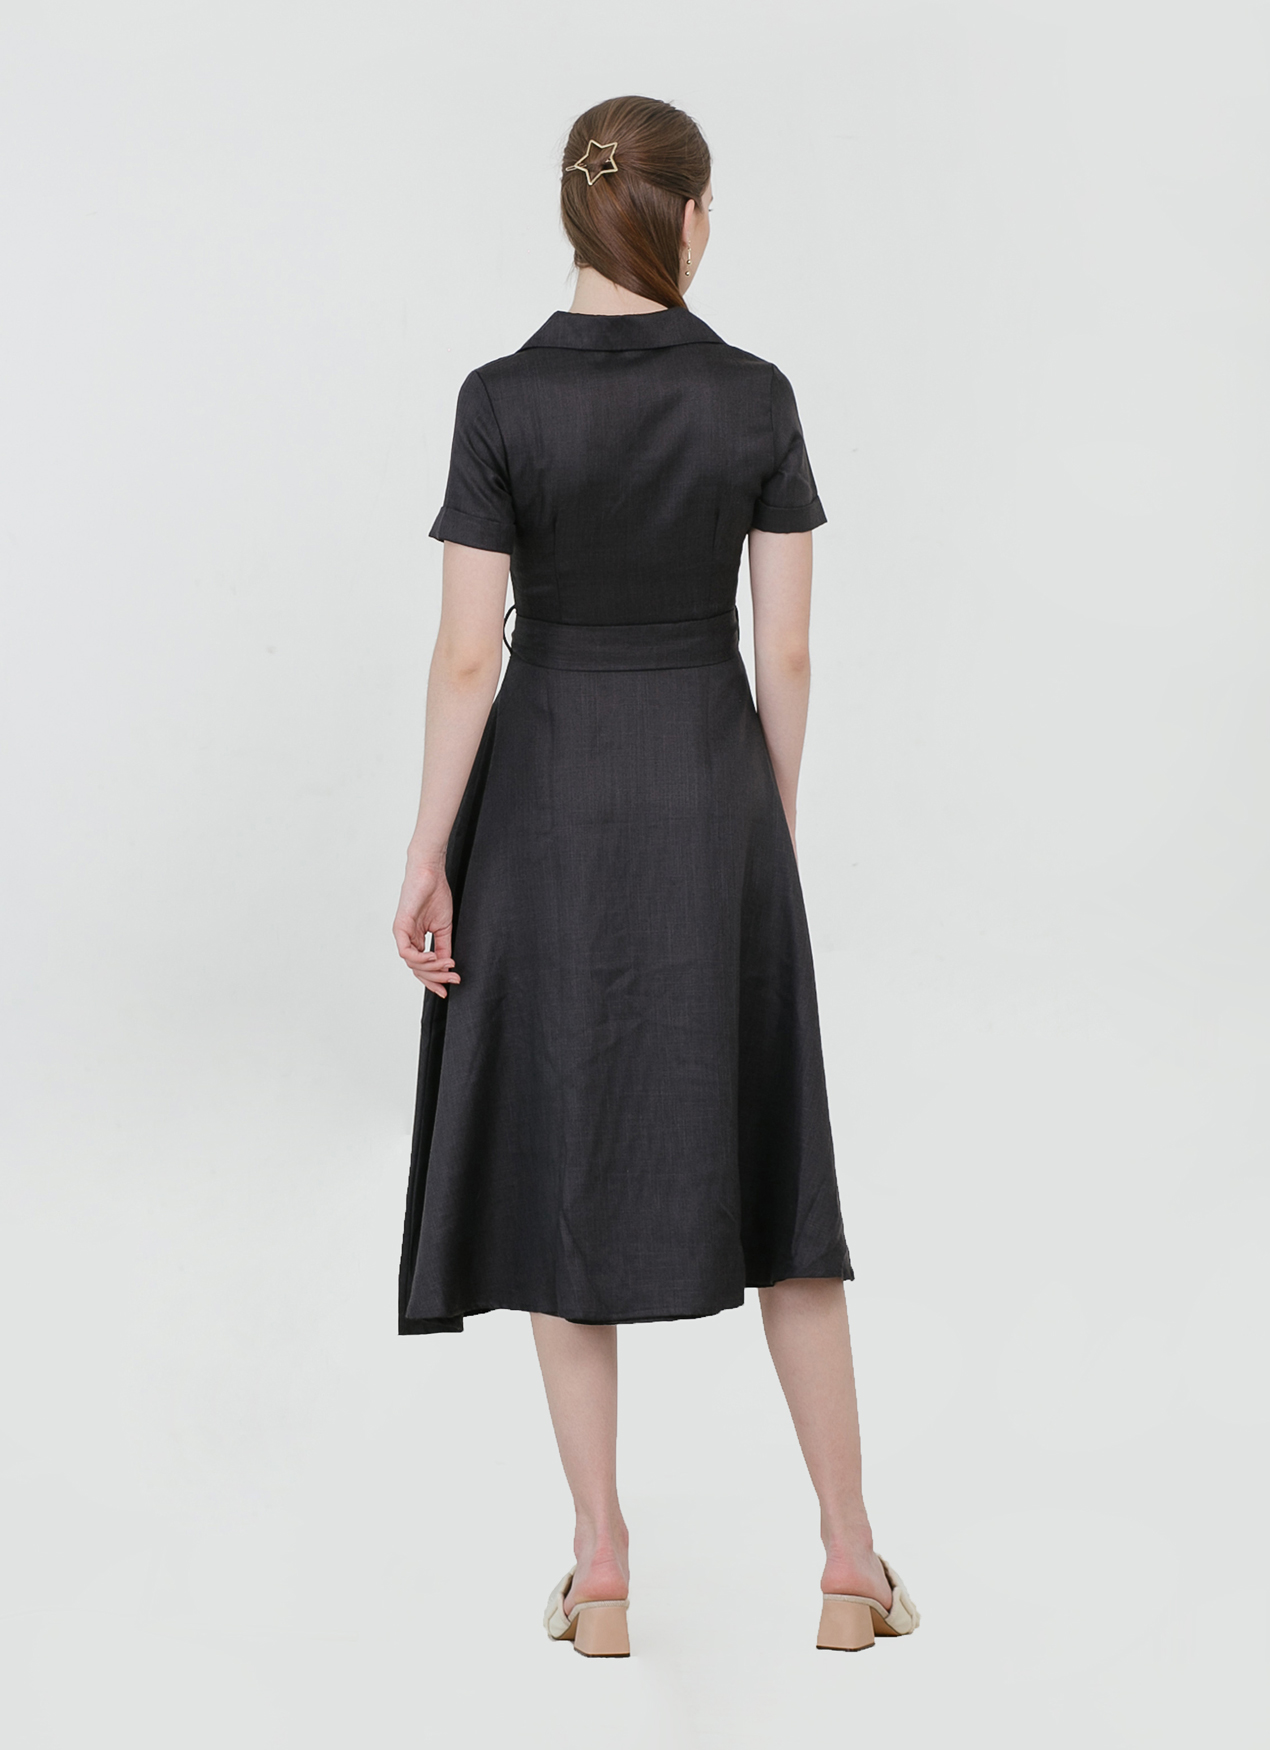 CLOTH INC Adele Tied Linen Dress - Charcoal